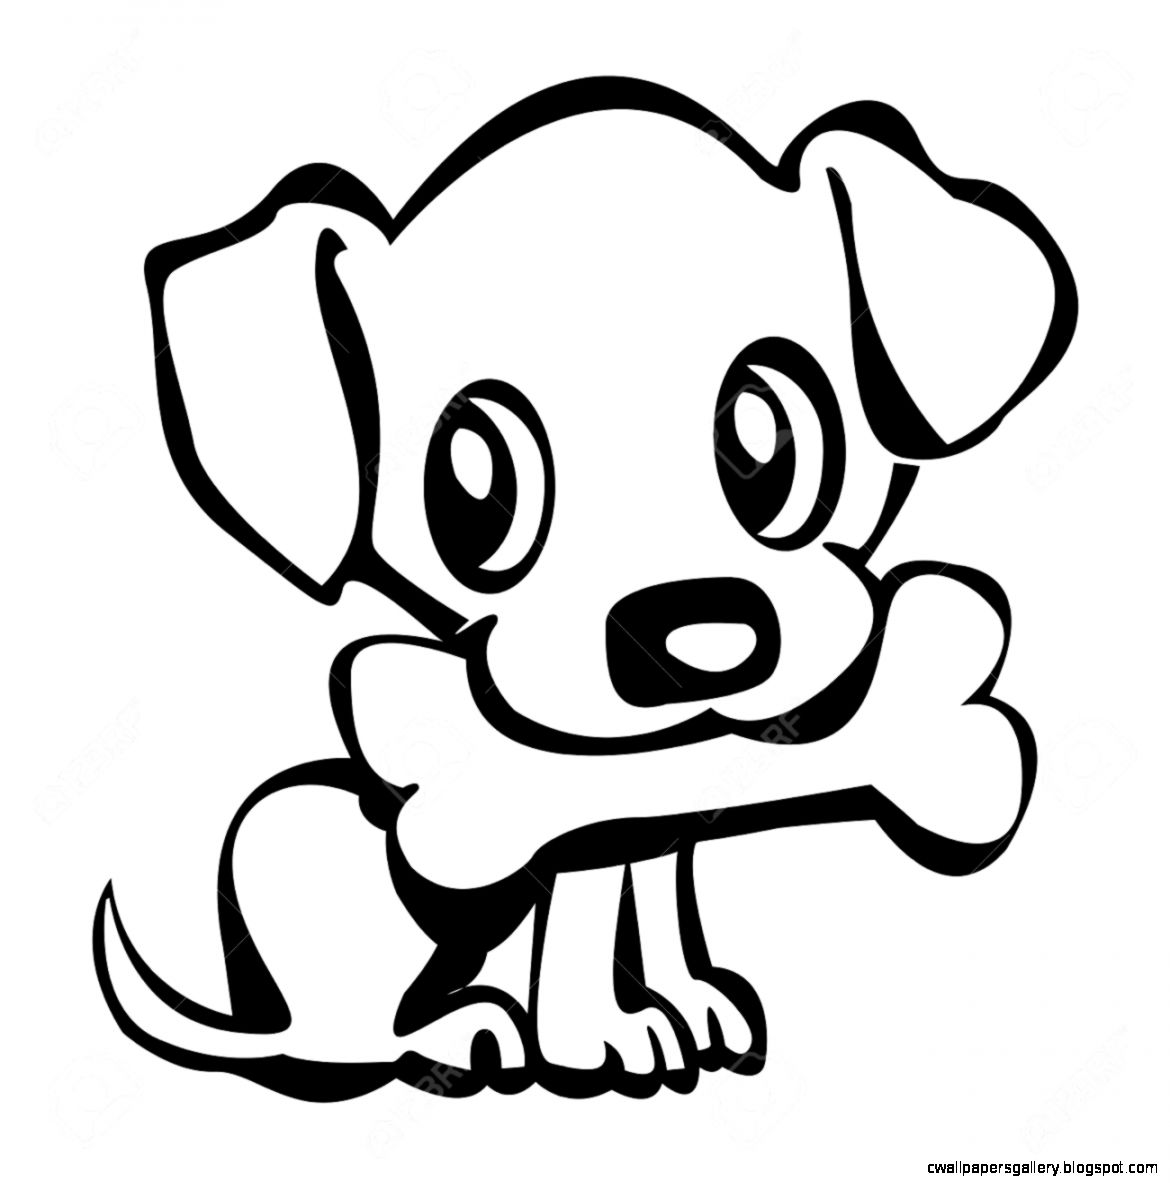 Line Drawing Of A Dog Face : Cute dog face drawing wallpapers gallery